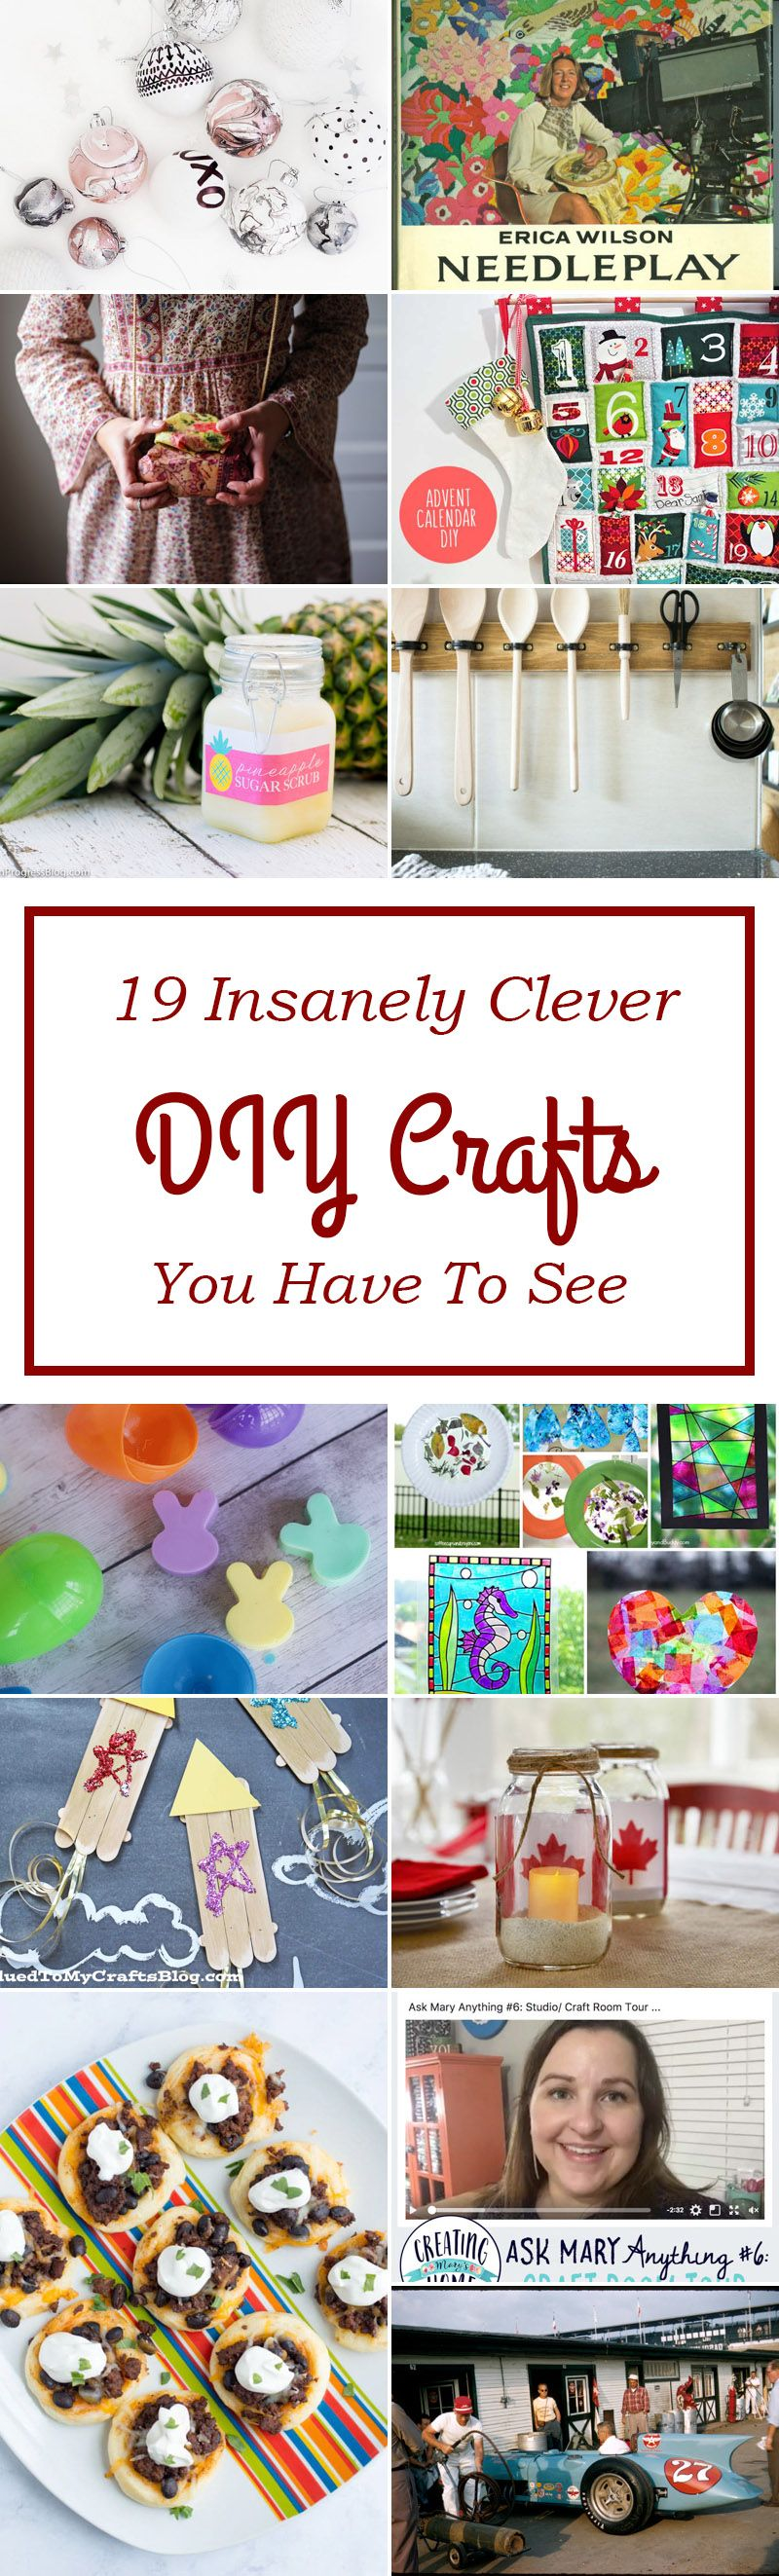 19 Insanely Clever Diy Crafts You Have To See